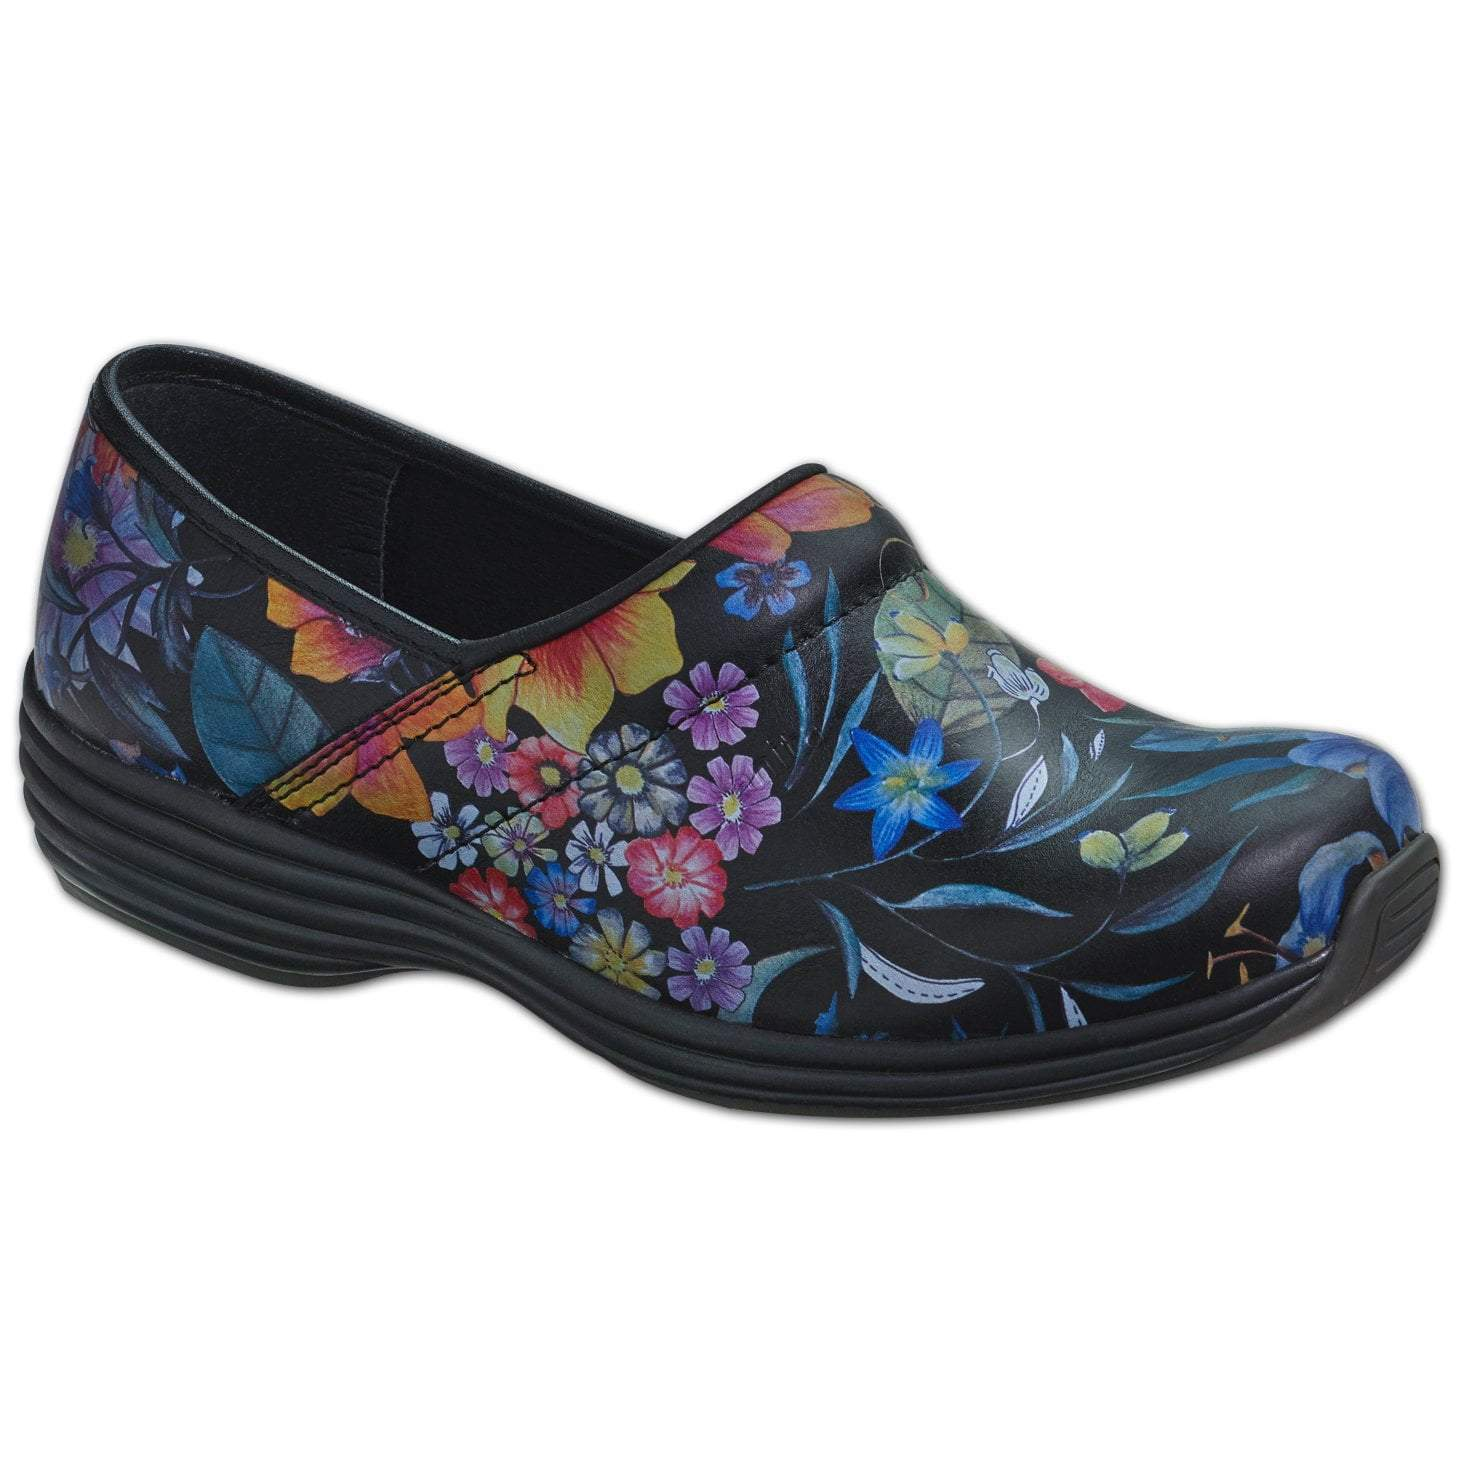 Sanita Suri Women's Closed Back Clog